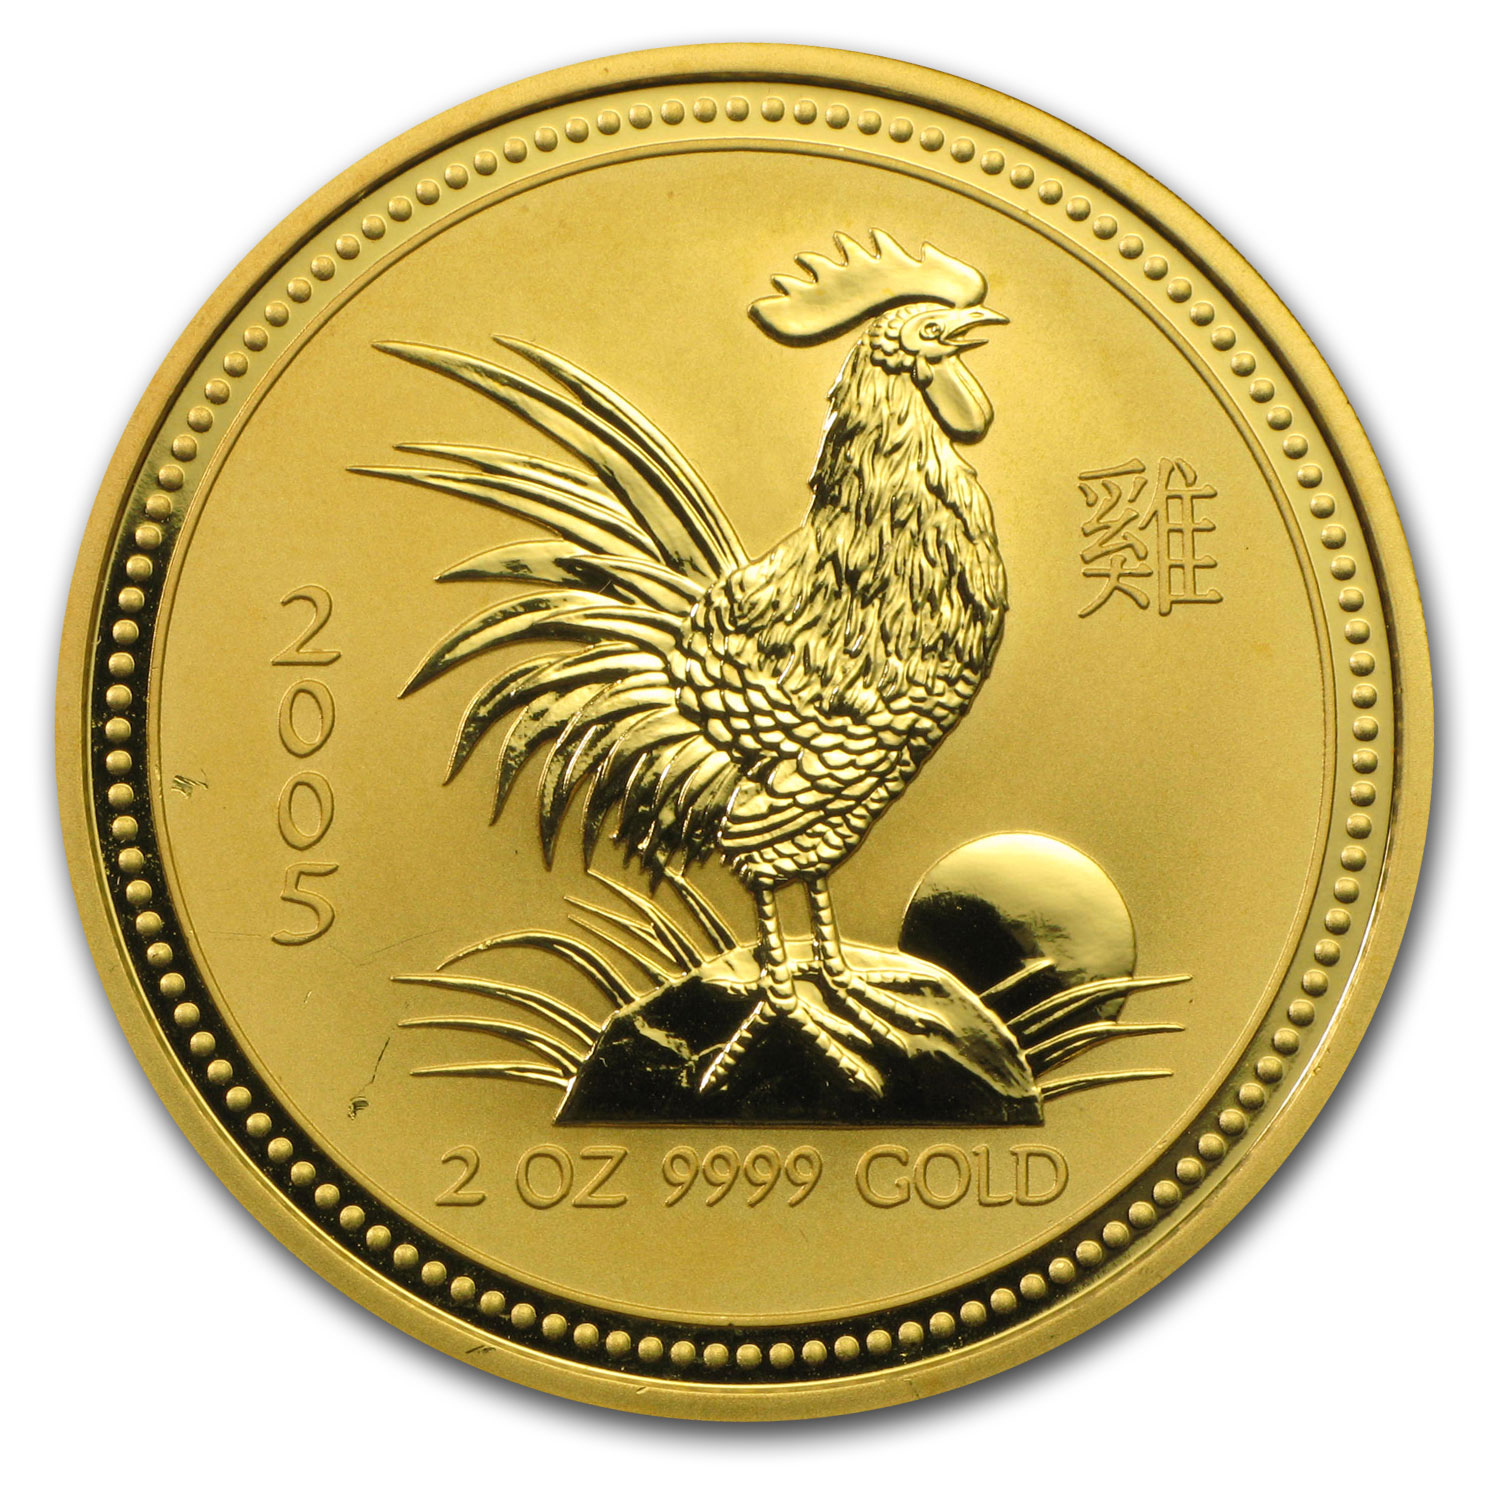 2005 2 oz Gold Lunar Year of the Rooster BU (Series I)